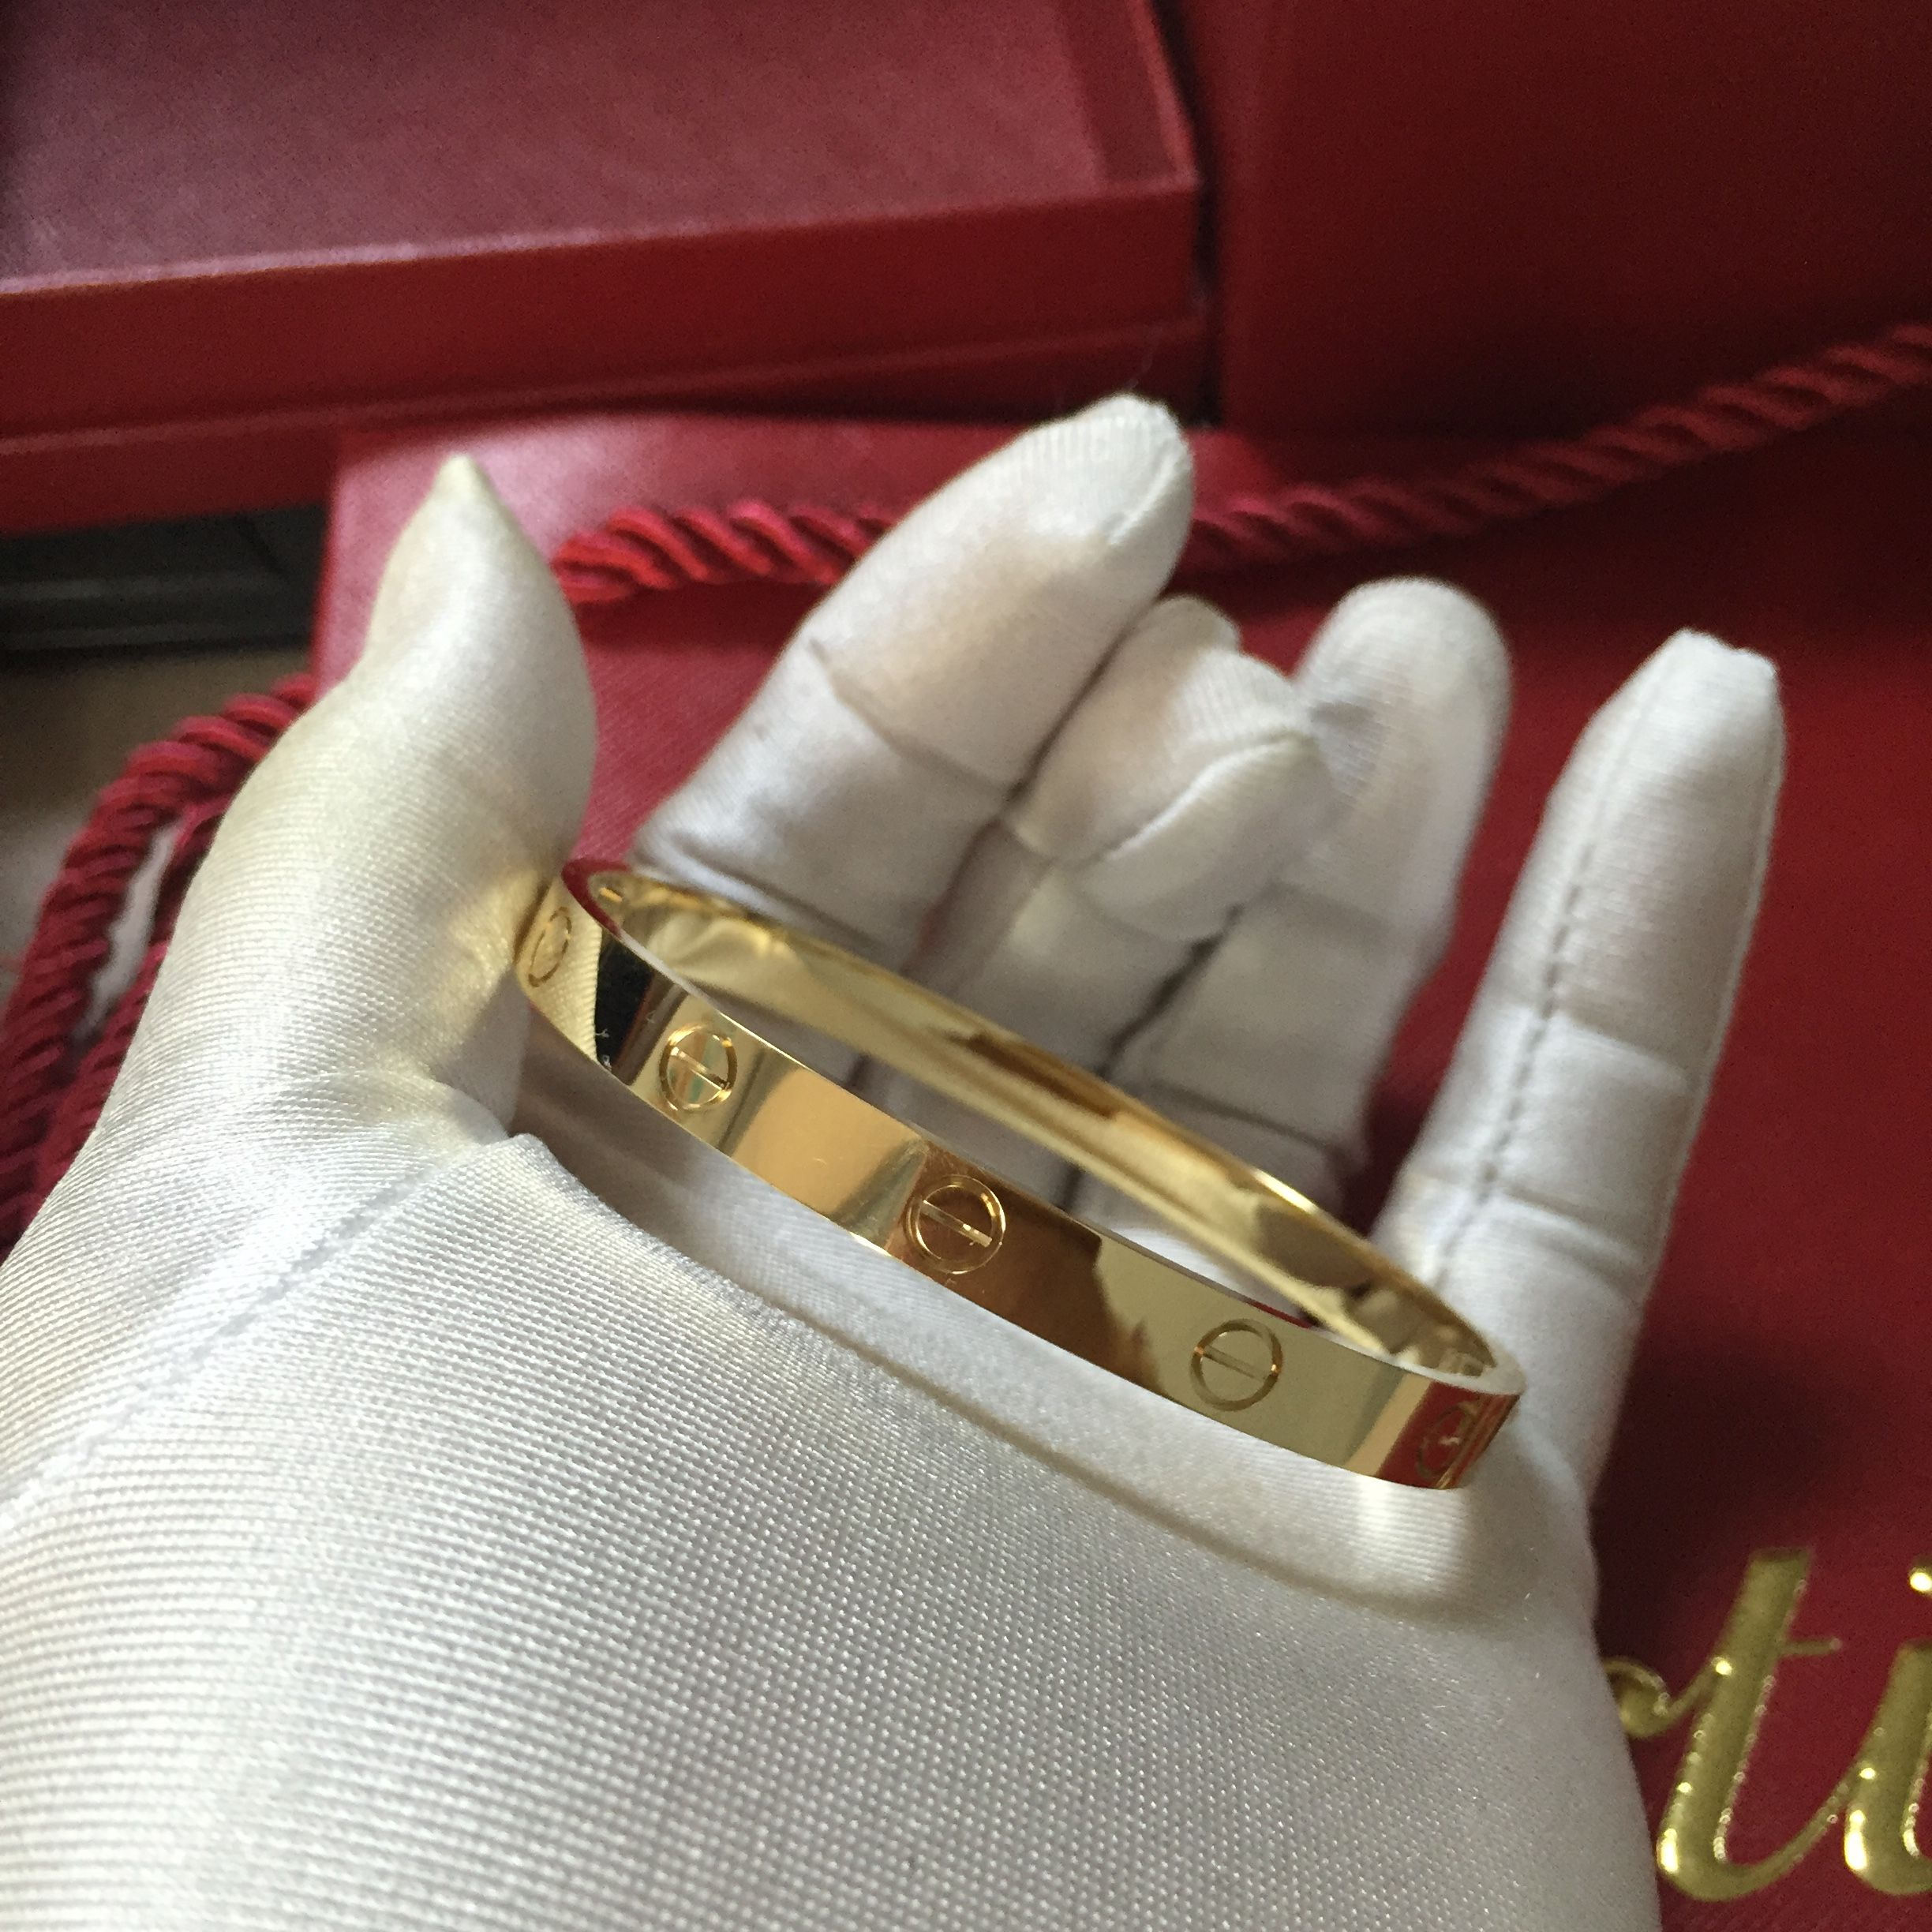 Solid 18k Yellow Gold Cartier Love Bracelet Size 15 21cm Still In Stock Gold Weight About 30 32g Cartier Love Bracelet Bracelet Sizes 18k Jewelry